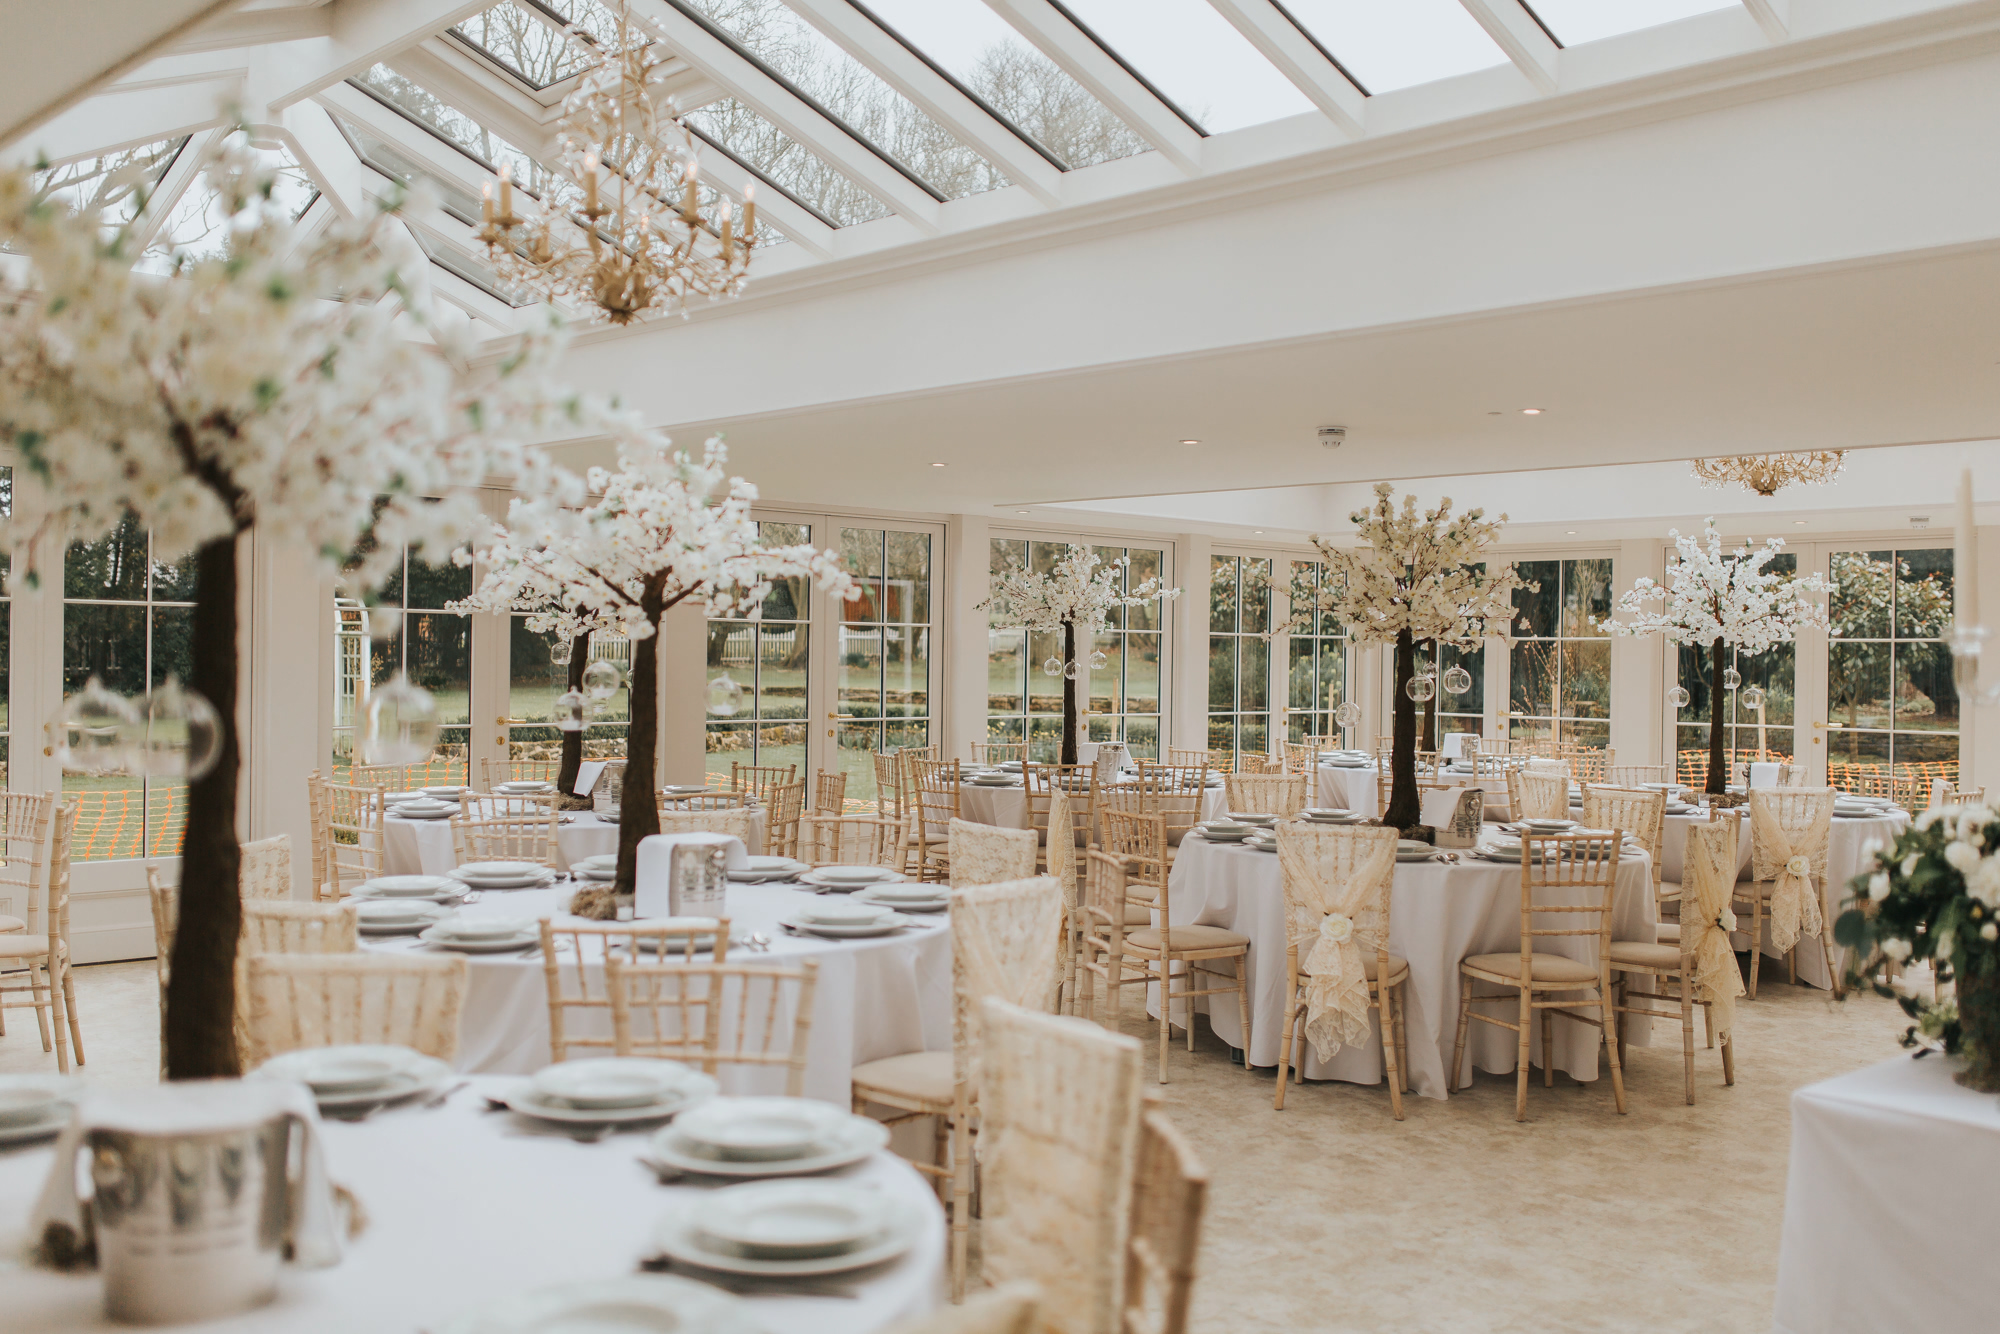 Hayne House Kent Orangery by Emily Crutcher 1 of 1